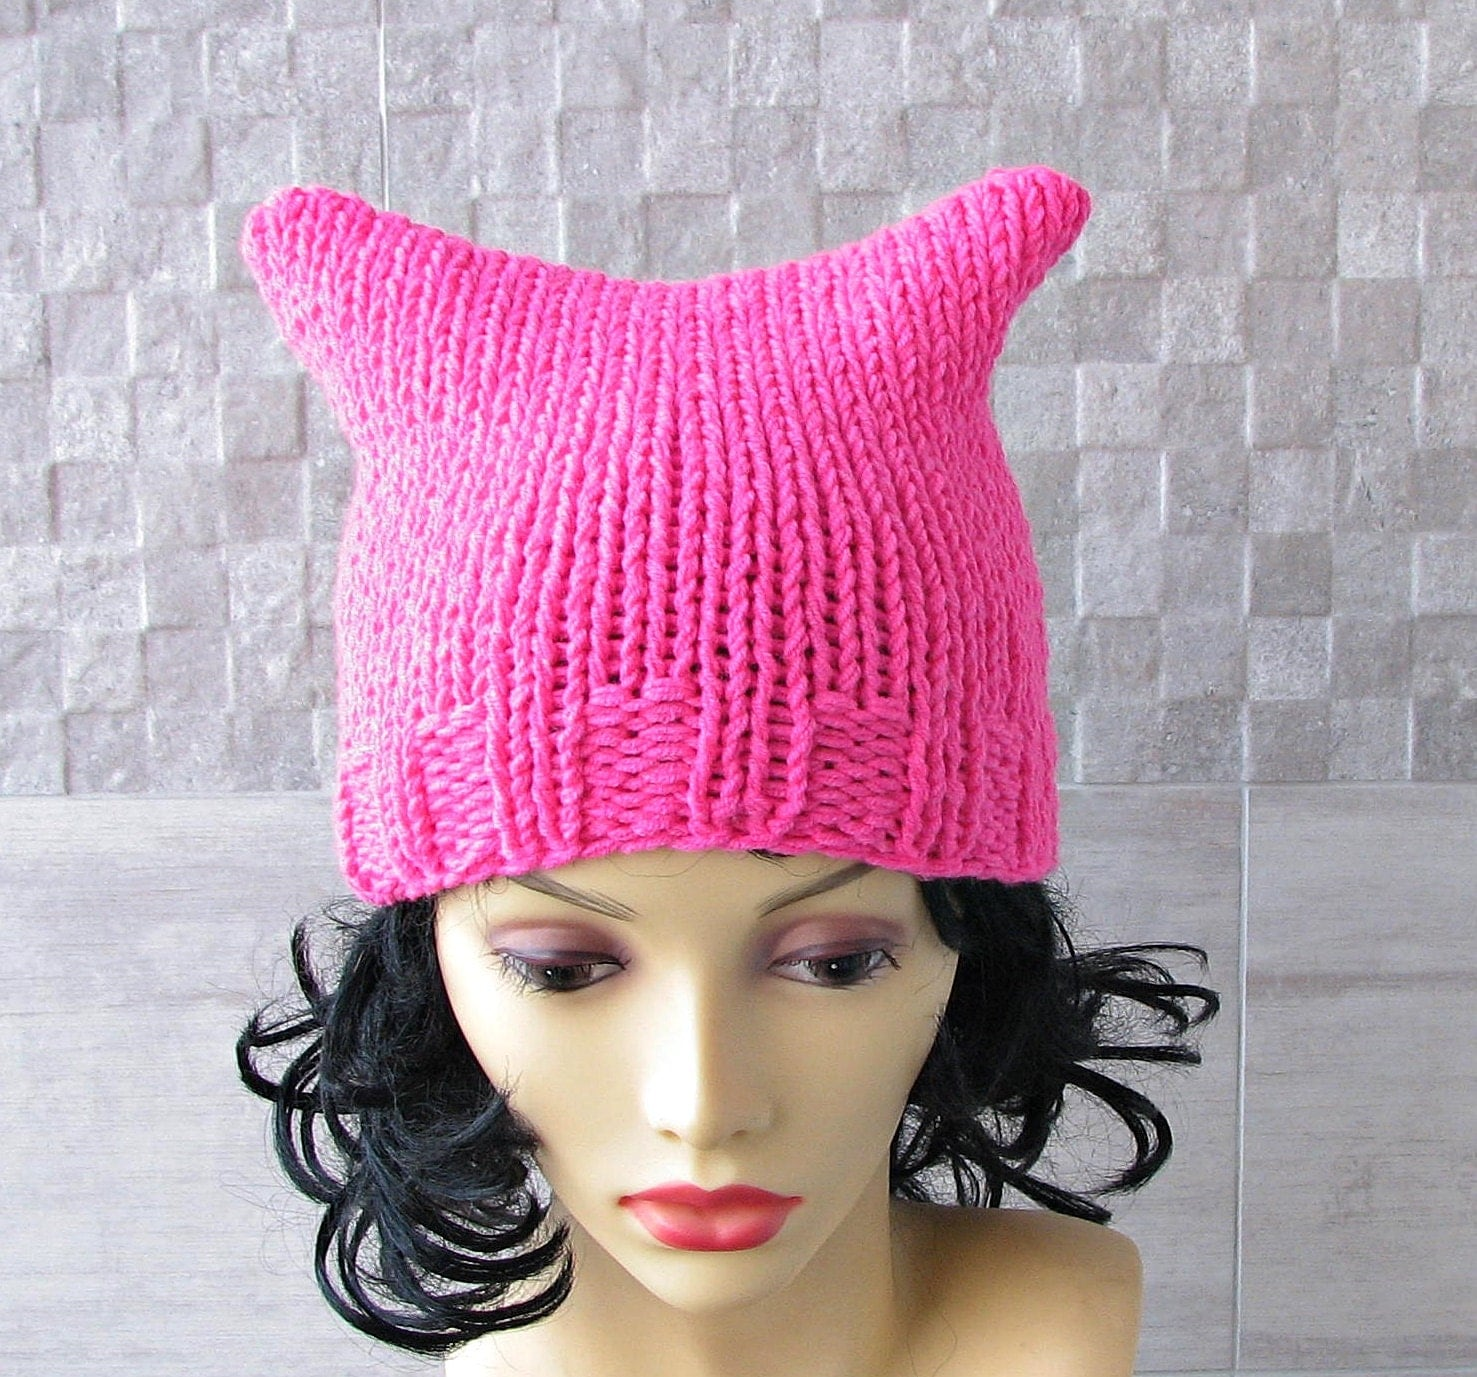 Neon Pink Pussyhat Pink Pussy Hat Womens also 2335447 furthermore Christening Baby Boy besides Used Boat 45958080122252687048534849654570 in addition 4026597422. on ref kok